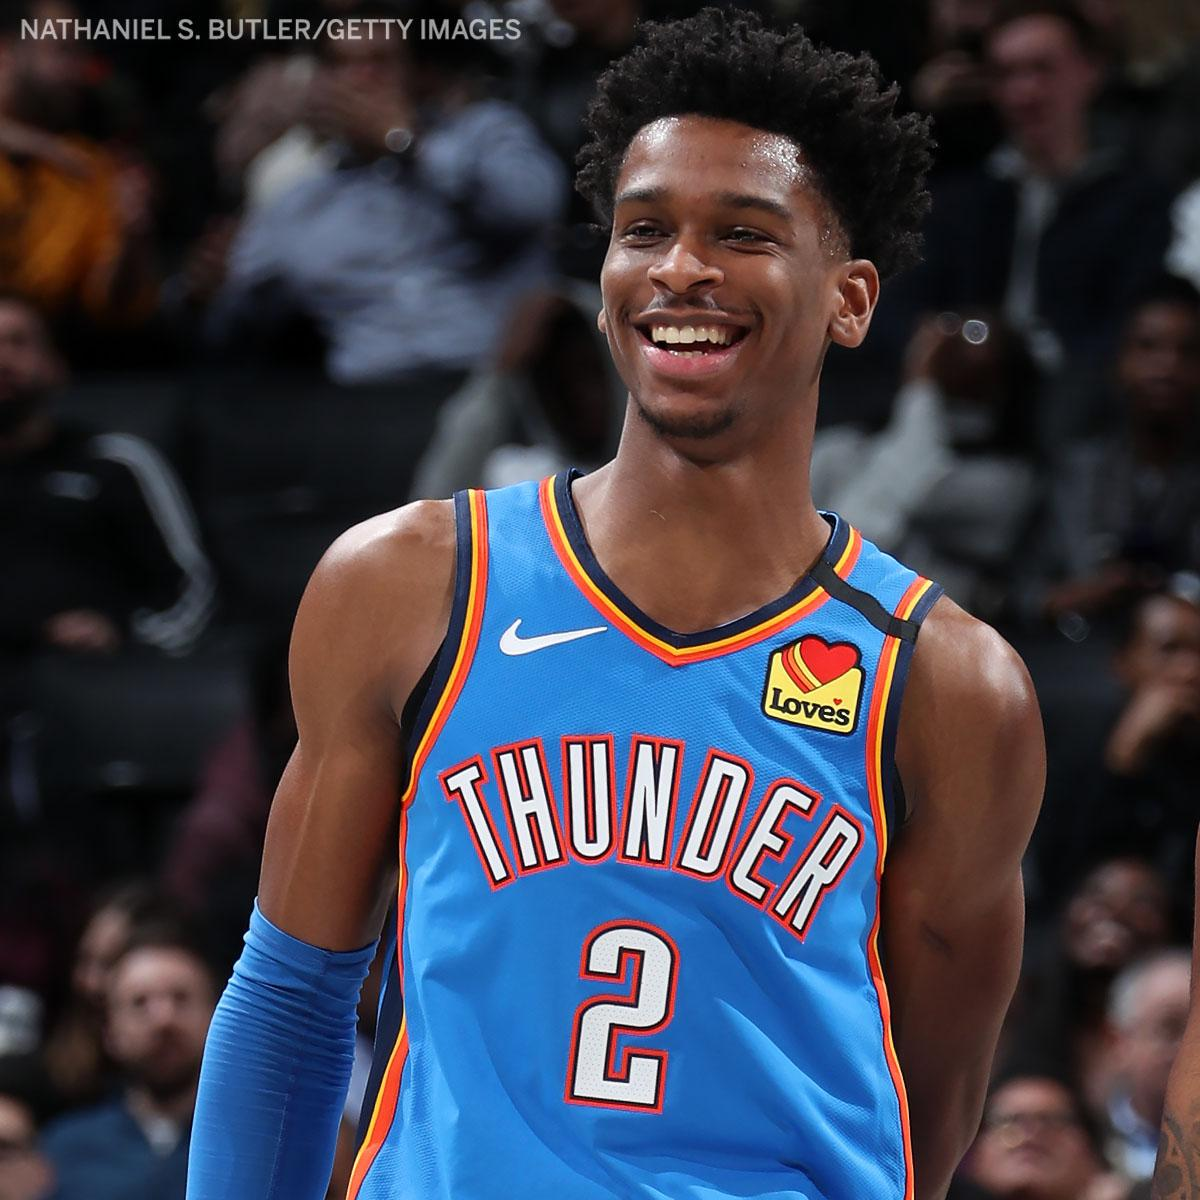 .@shaiglalex is now the youngest player in NBA history with a 20-rebound triple-double, passing @SHAQ 🔥  (via @EliasSports)